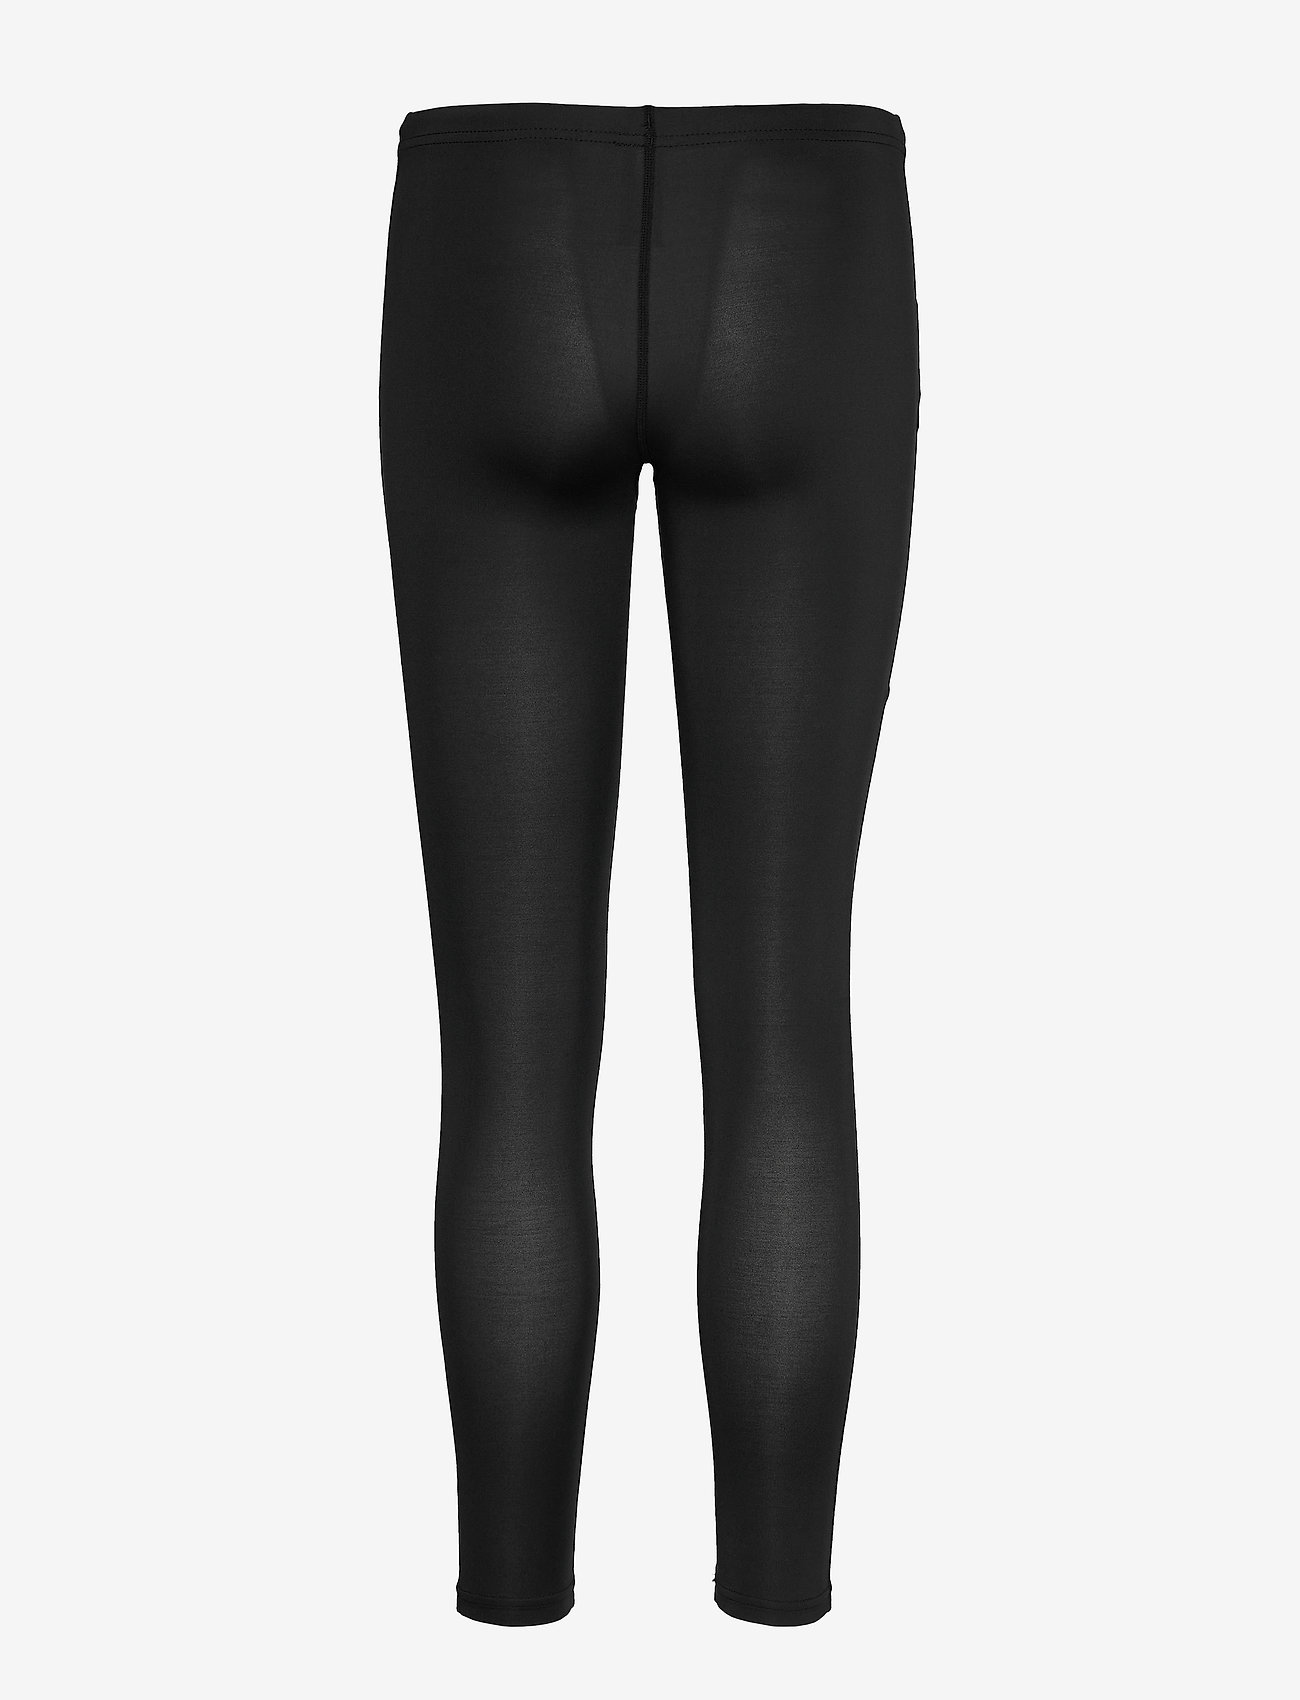 Sail Racing - W RACE TIGHTS - running & training tights - carbon - 1